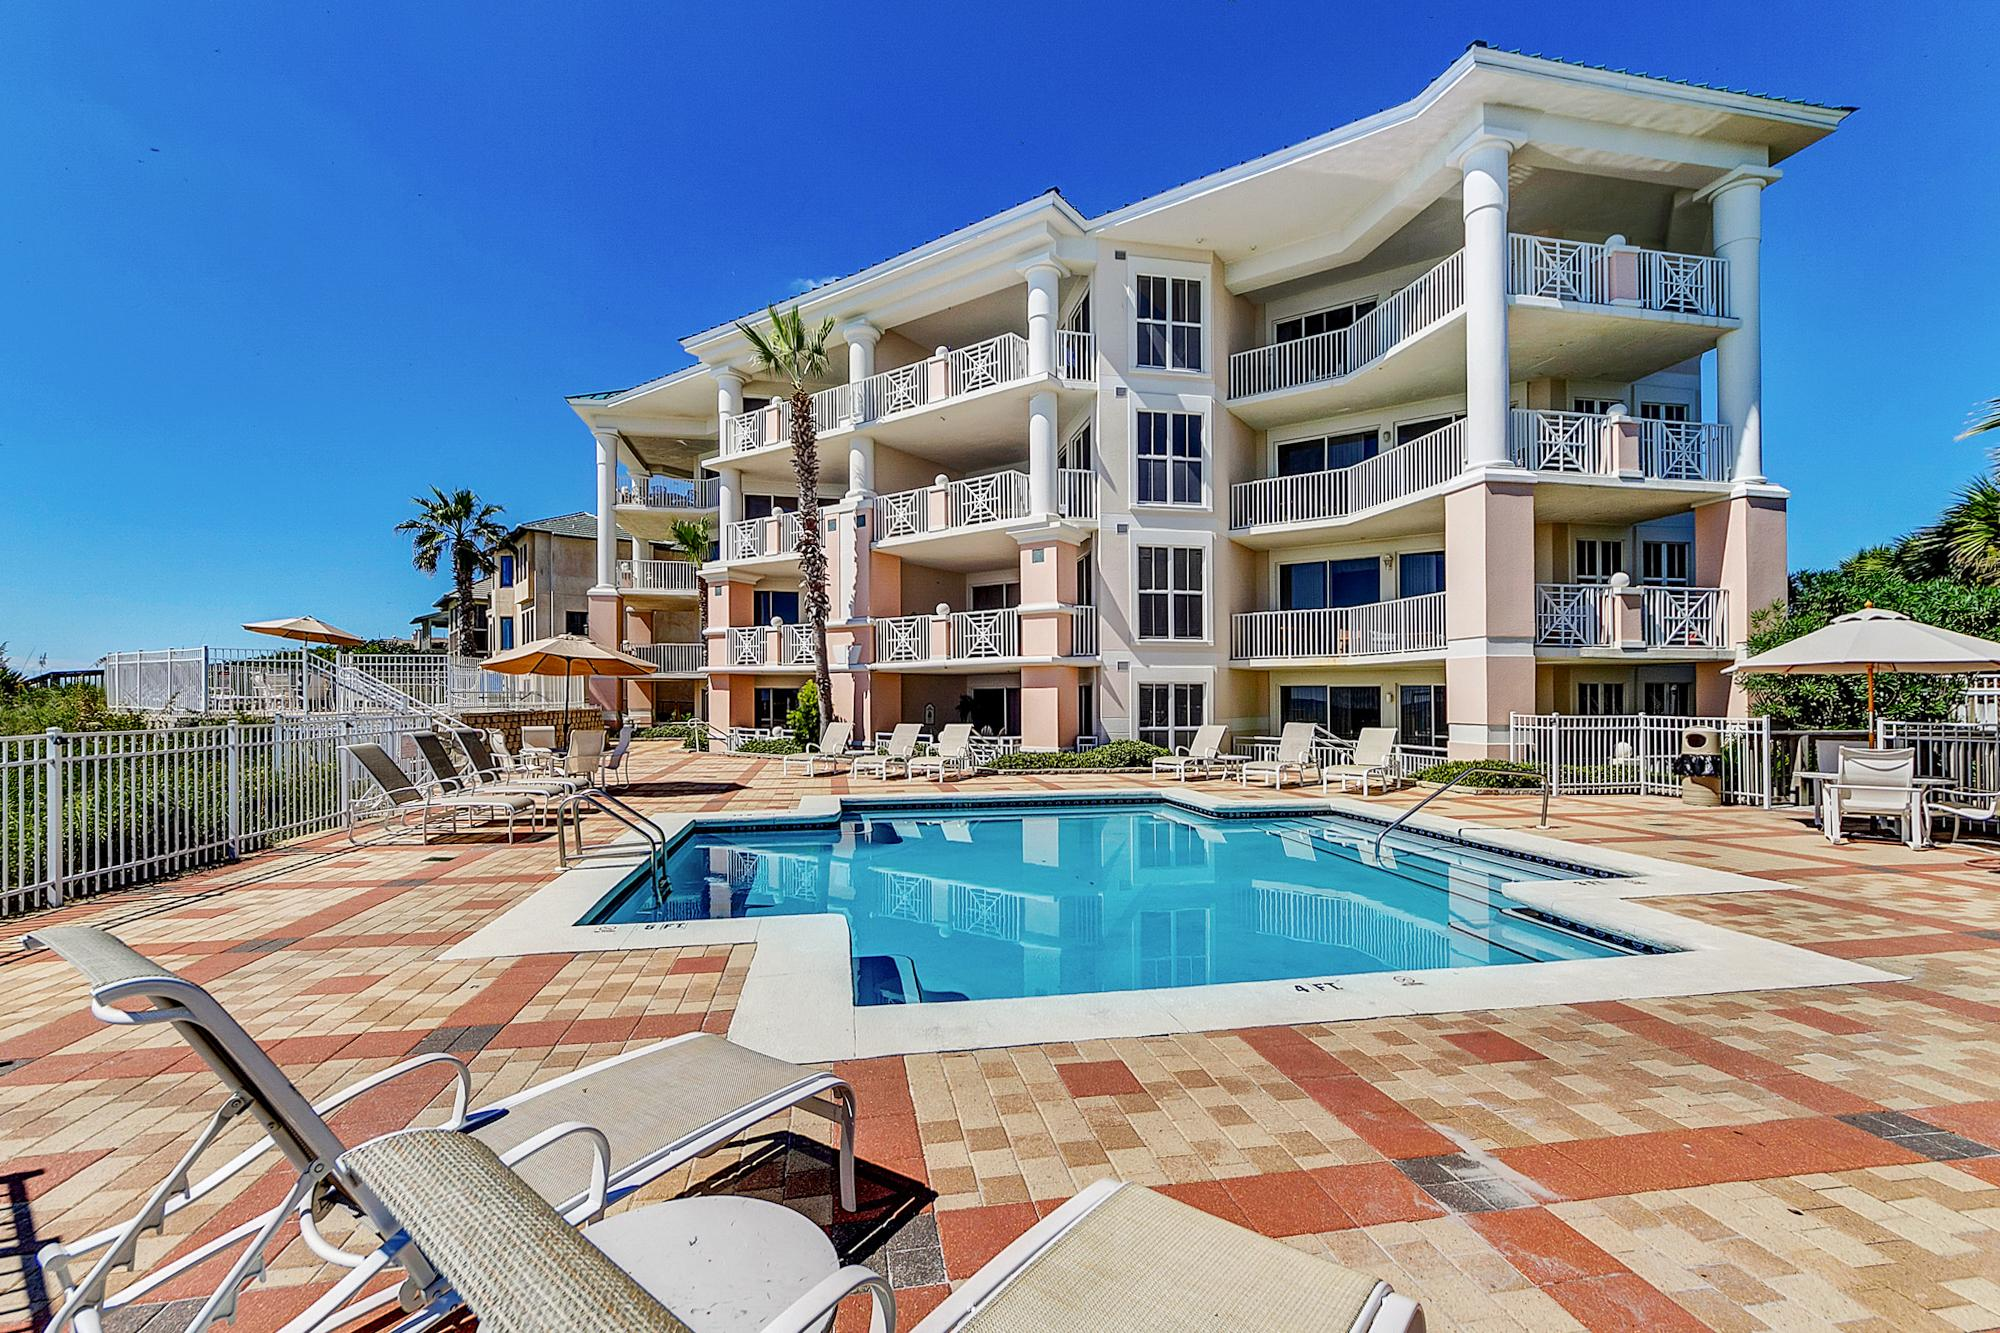 This condo is professionally managed by TurnKey Vacation Rentals and features dozens of amenities including a beachfront pool.